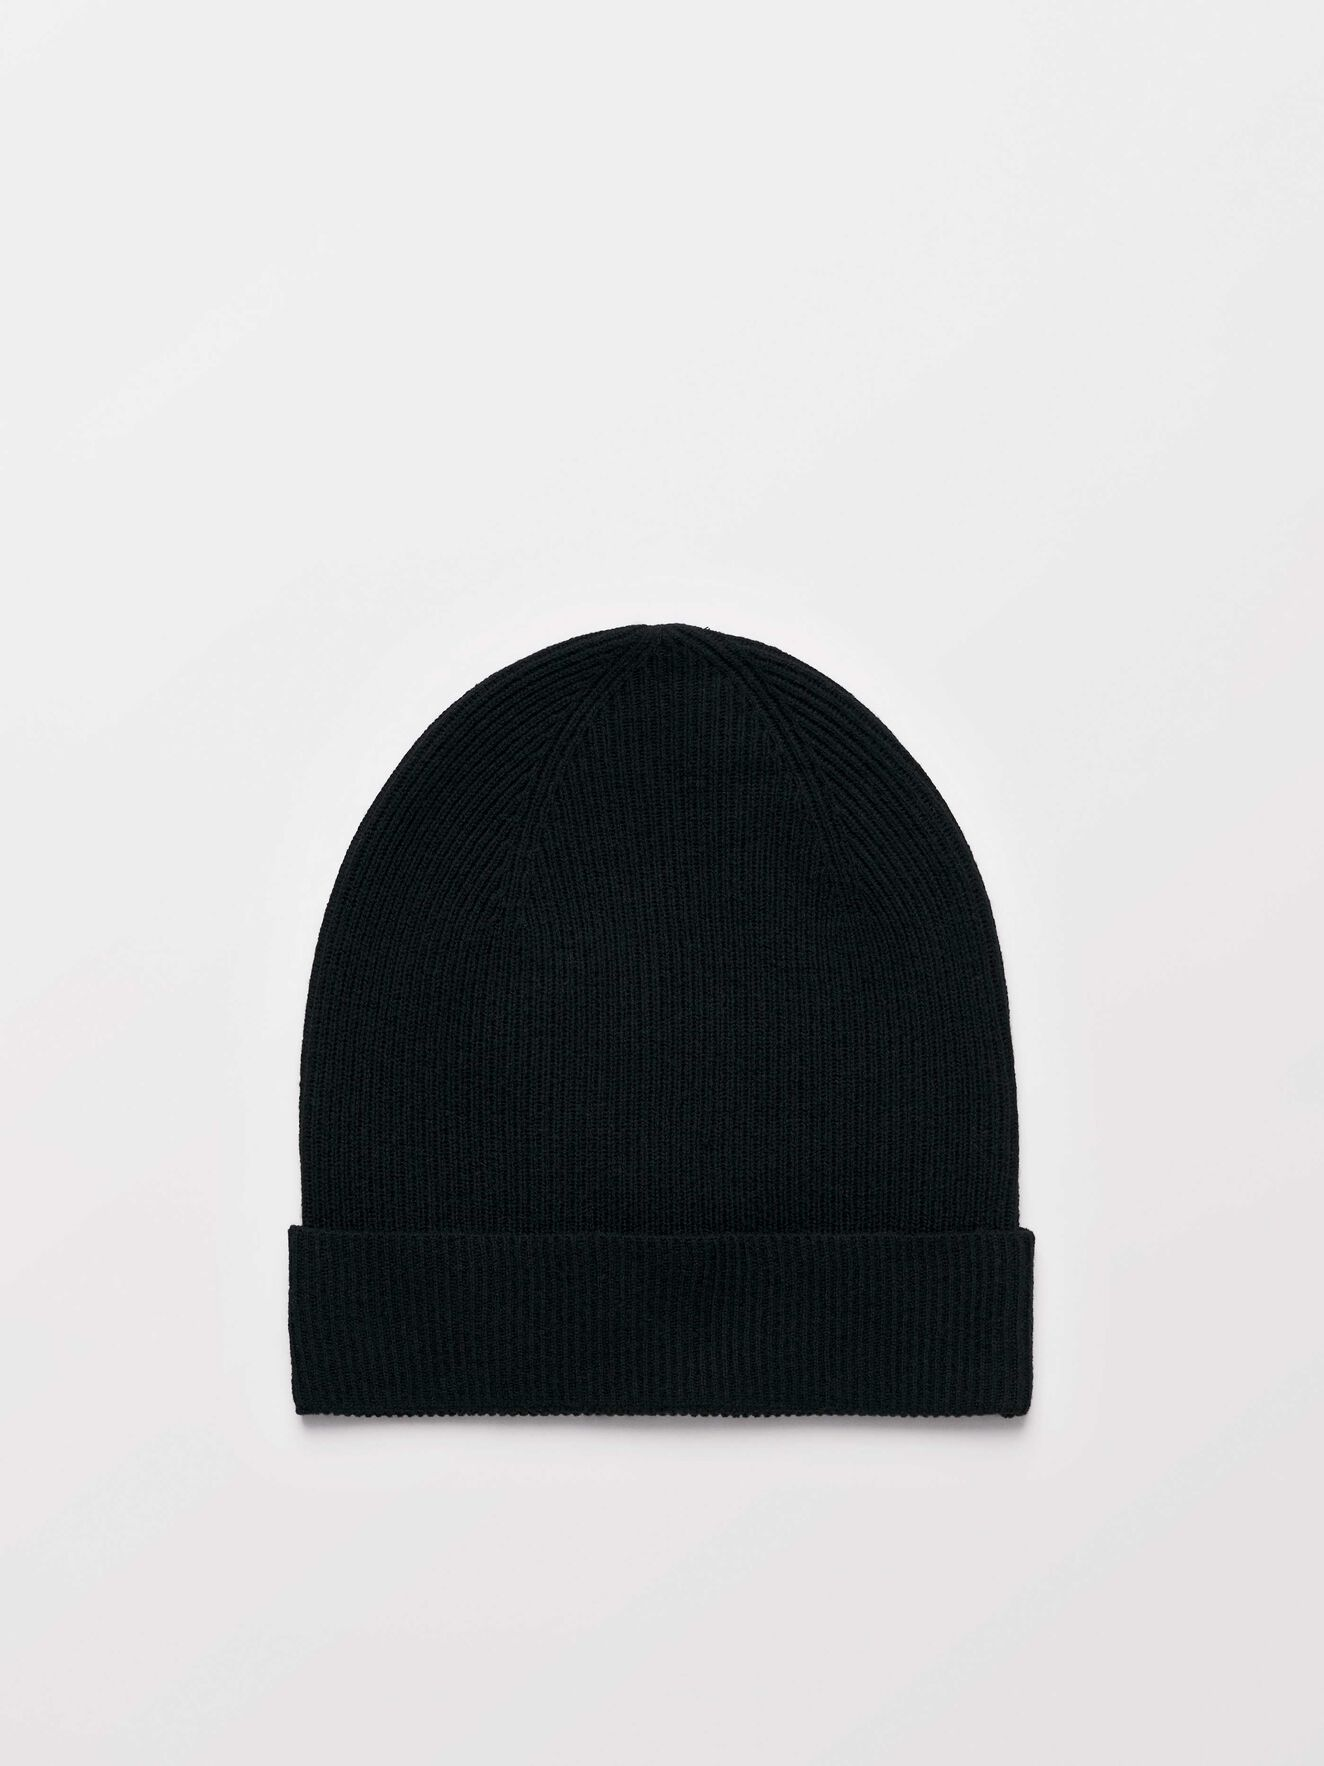 Giola  Beanie in Black from Tiger of Sweden